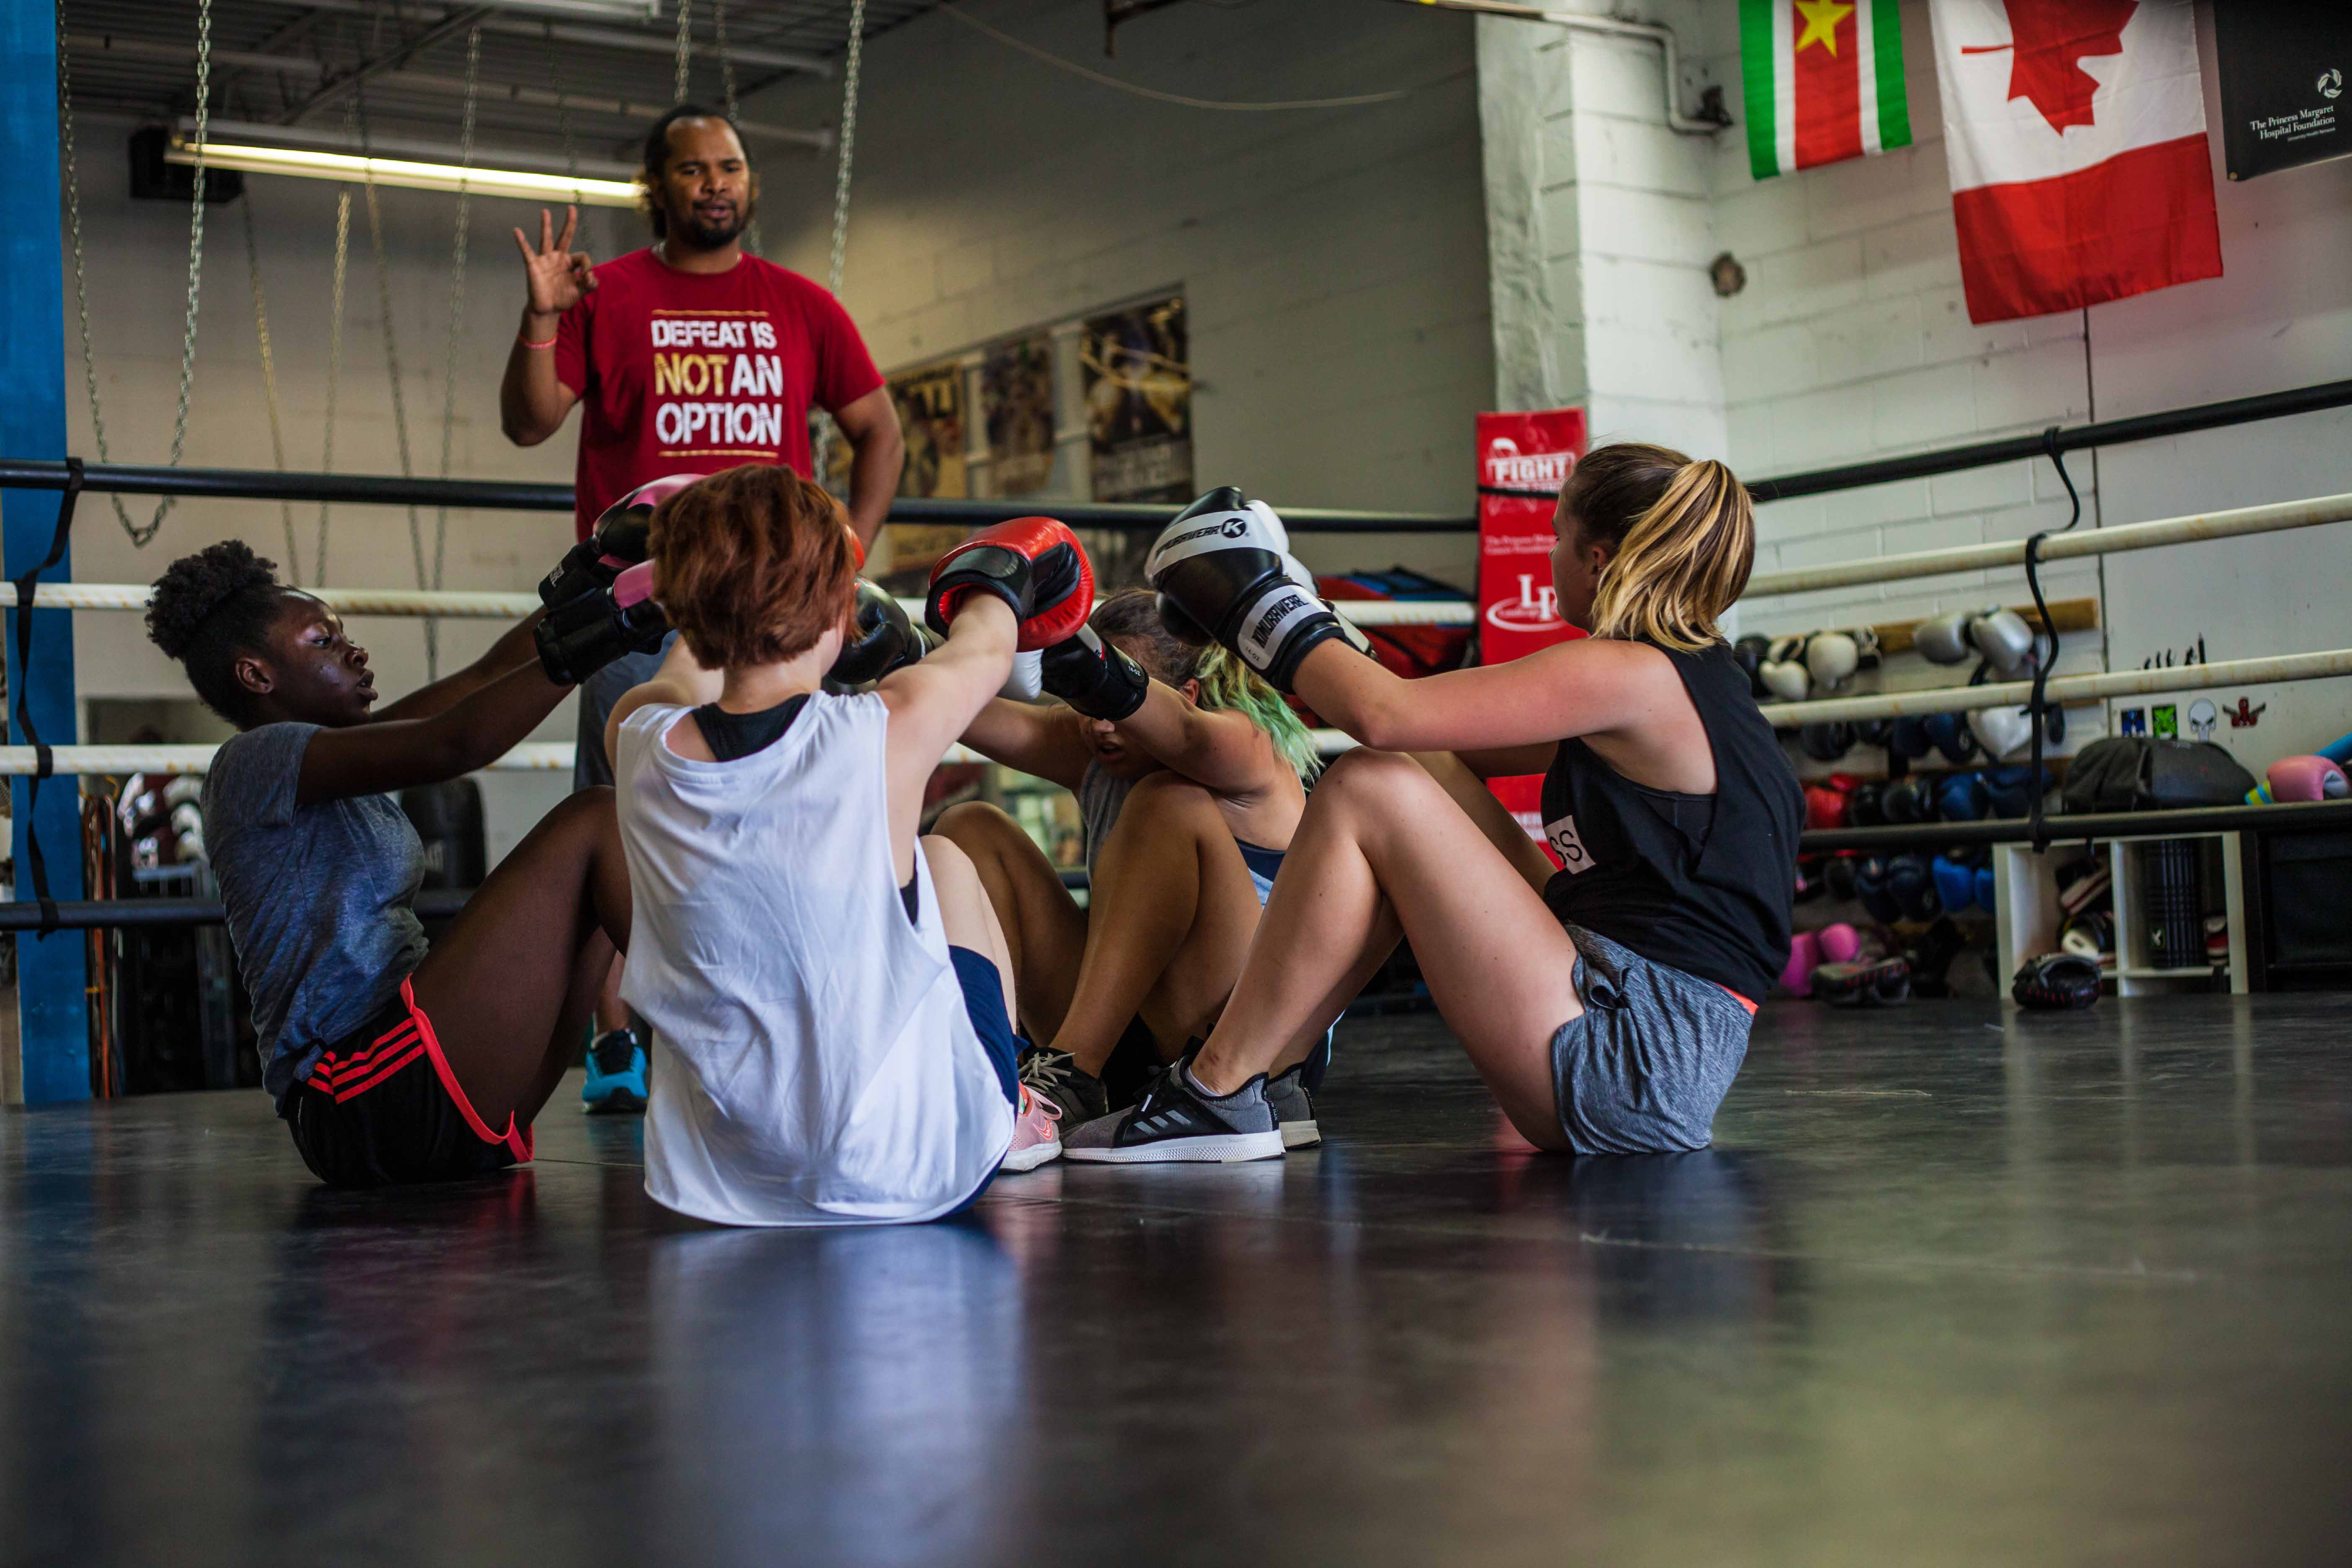 Baltimore boxing classes for kids, youth and adults